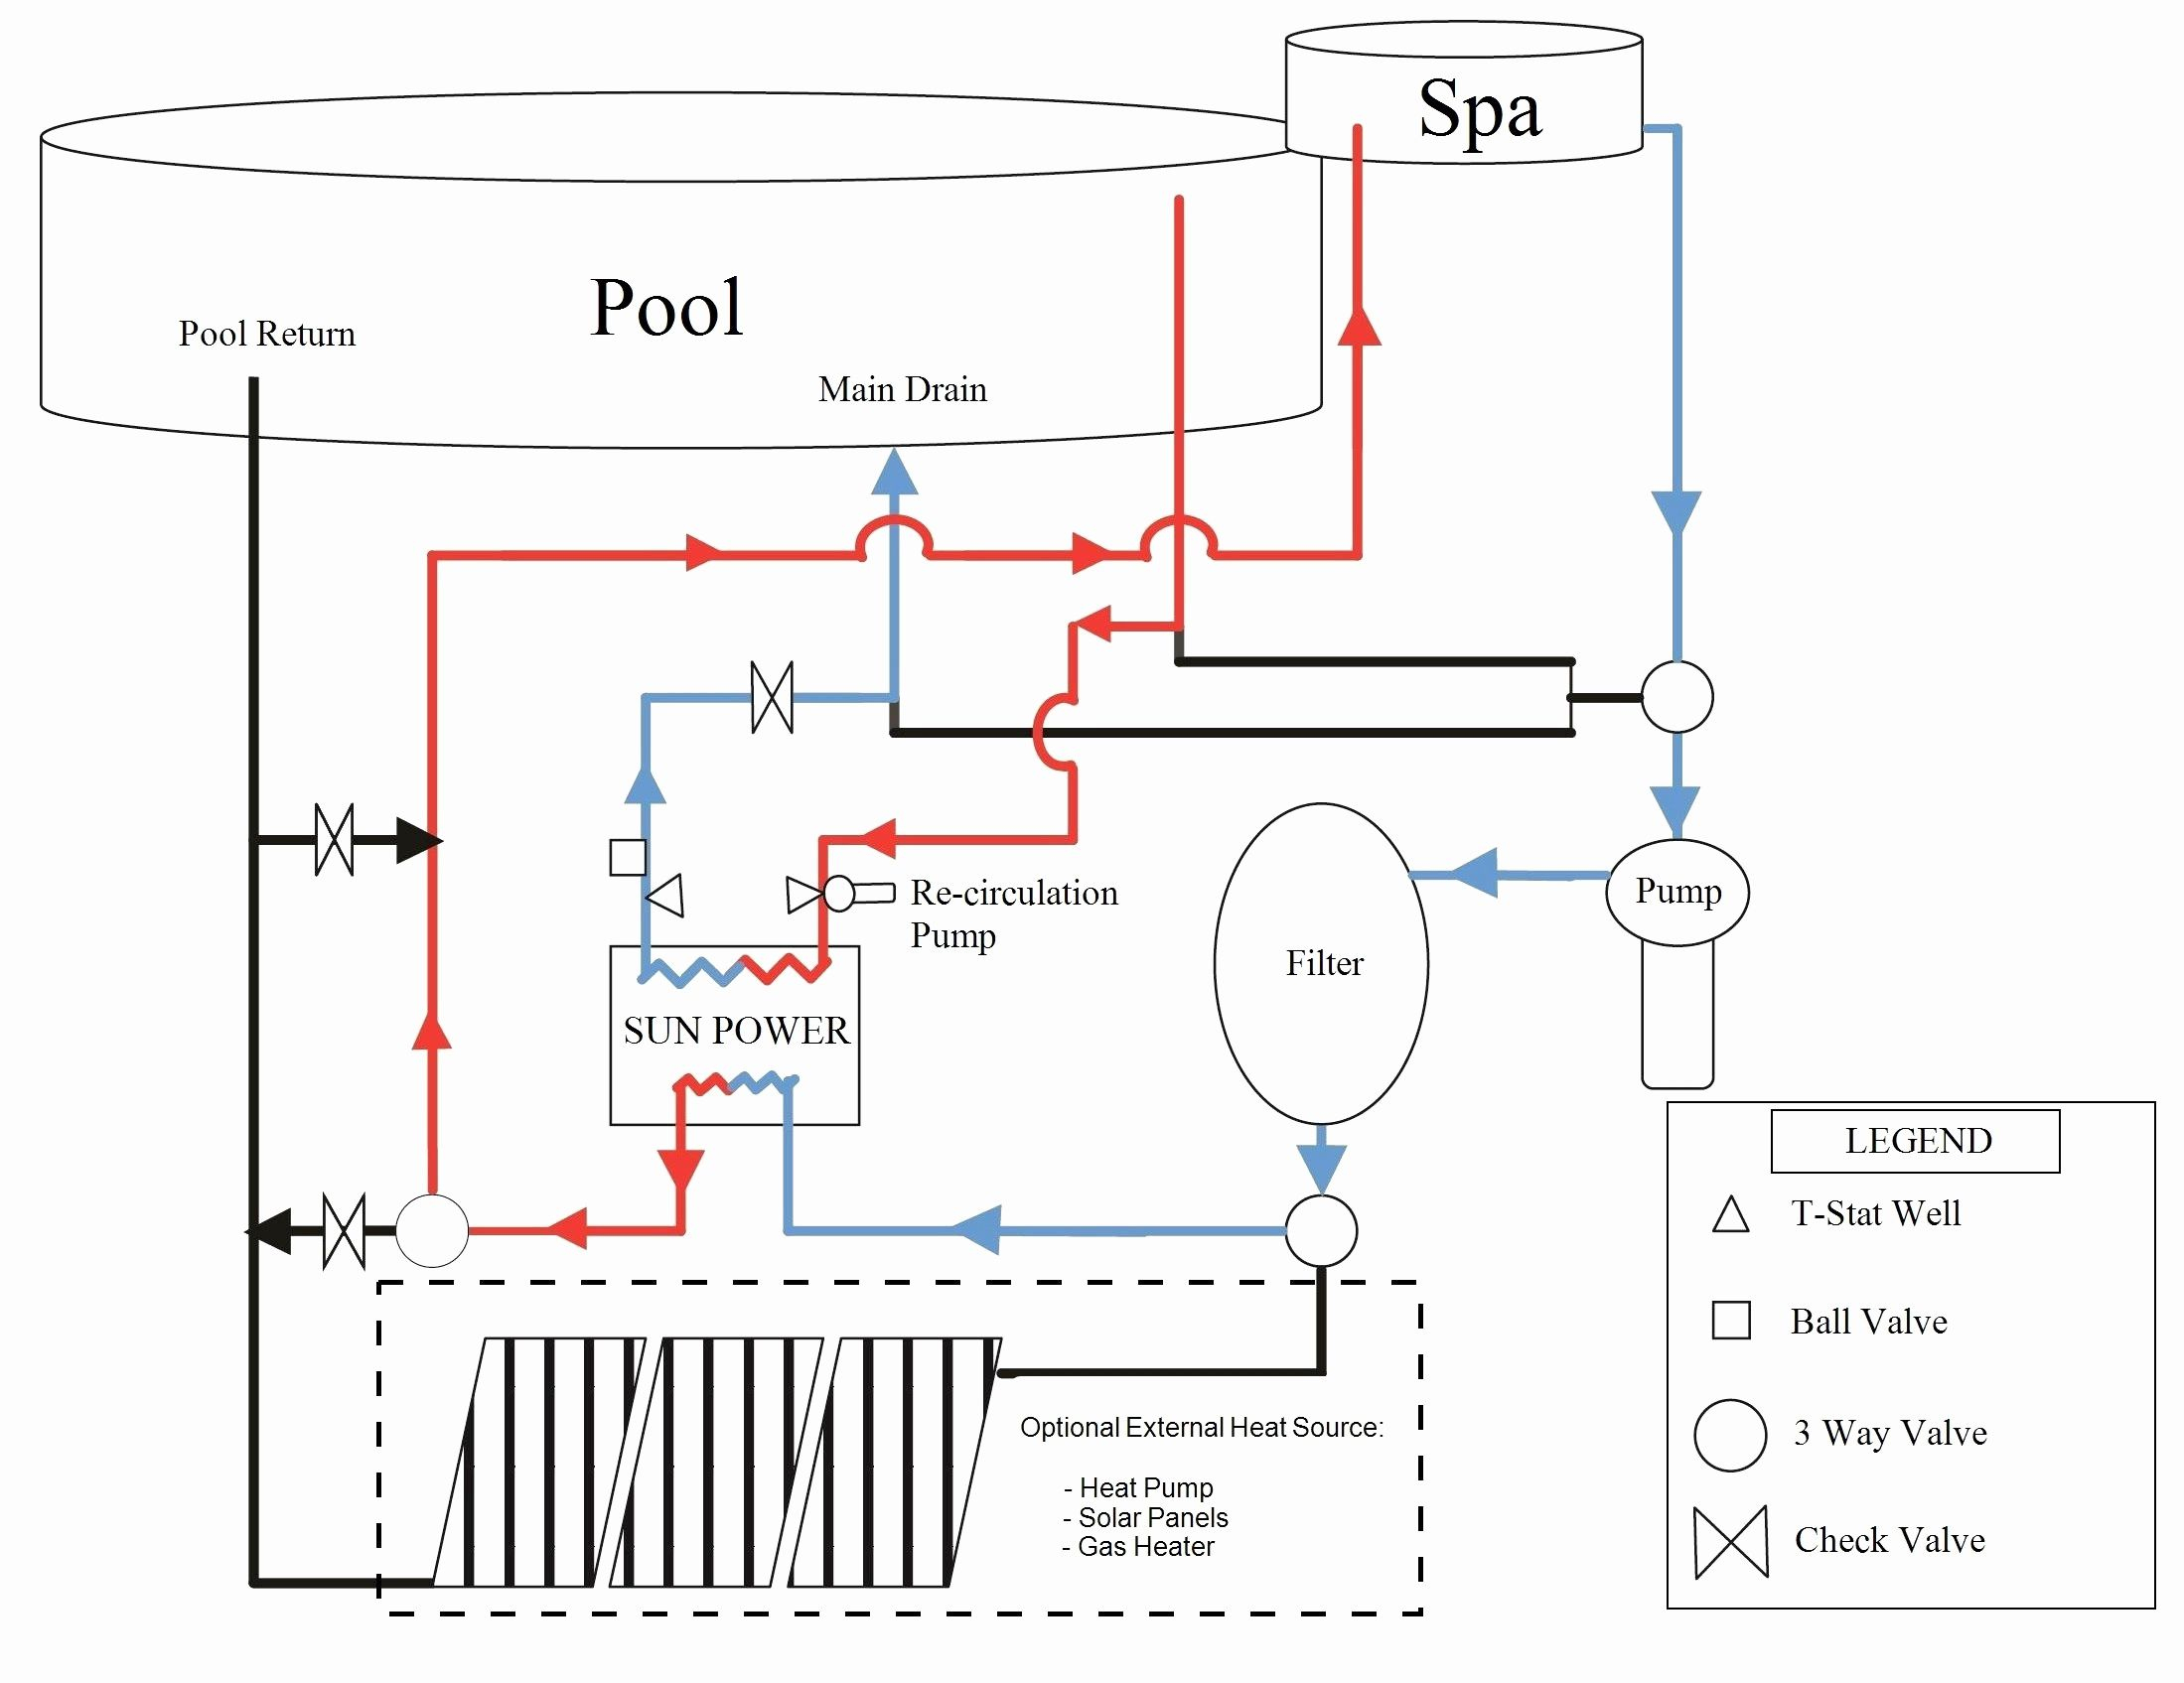 Pool Light Transformer Wiring Diagram - Wiring Diagram Description - Pool Light Transformer Wiring Diagram